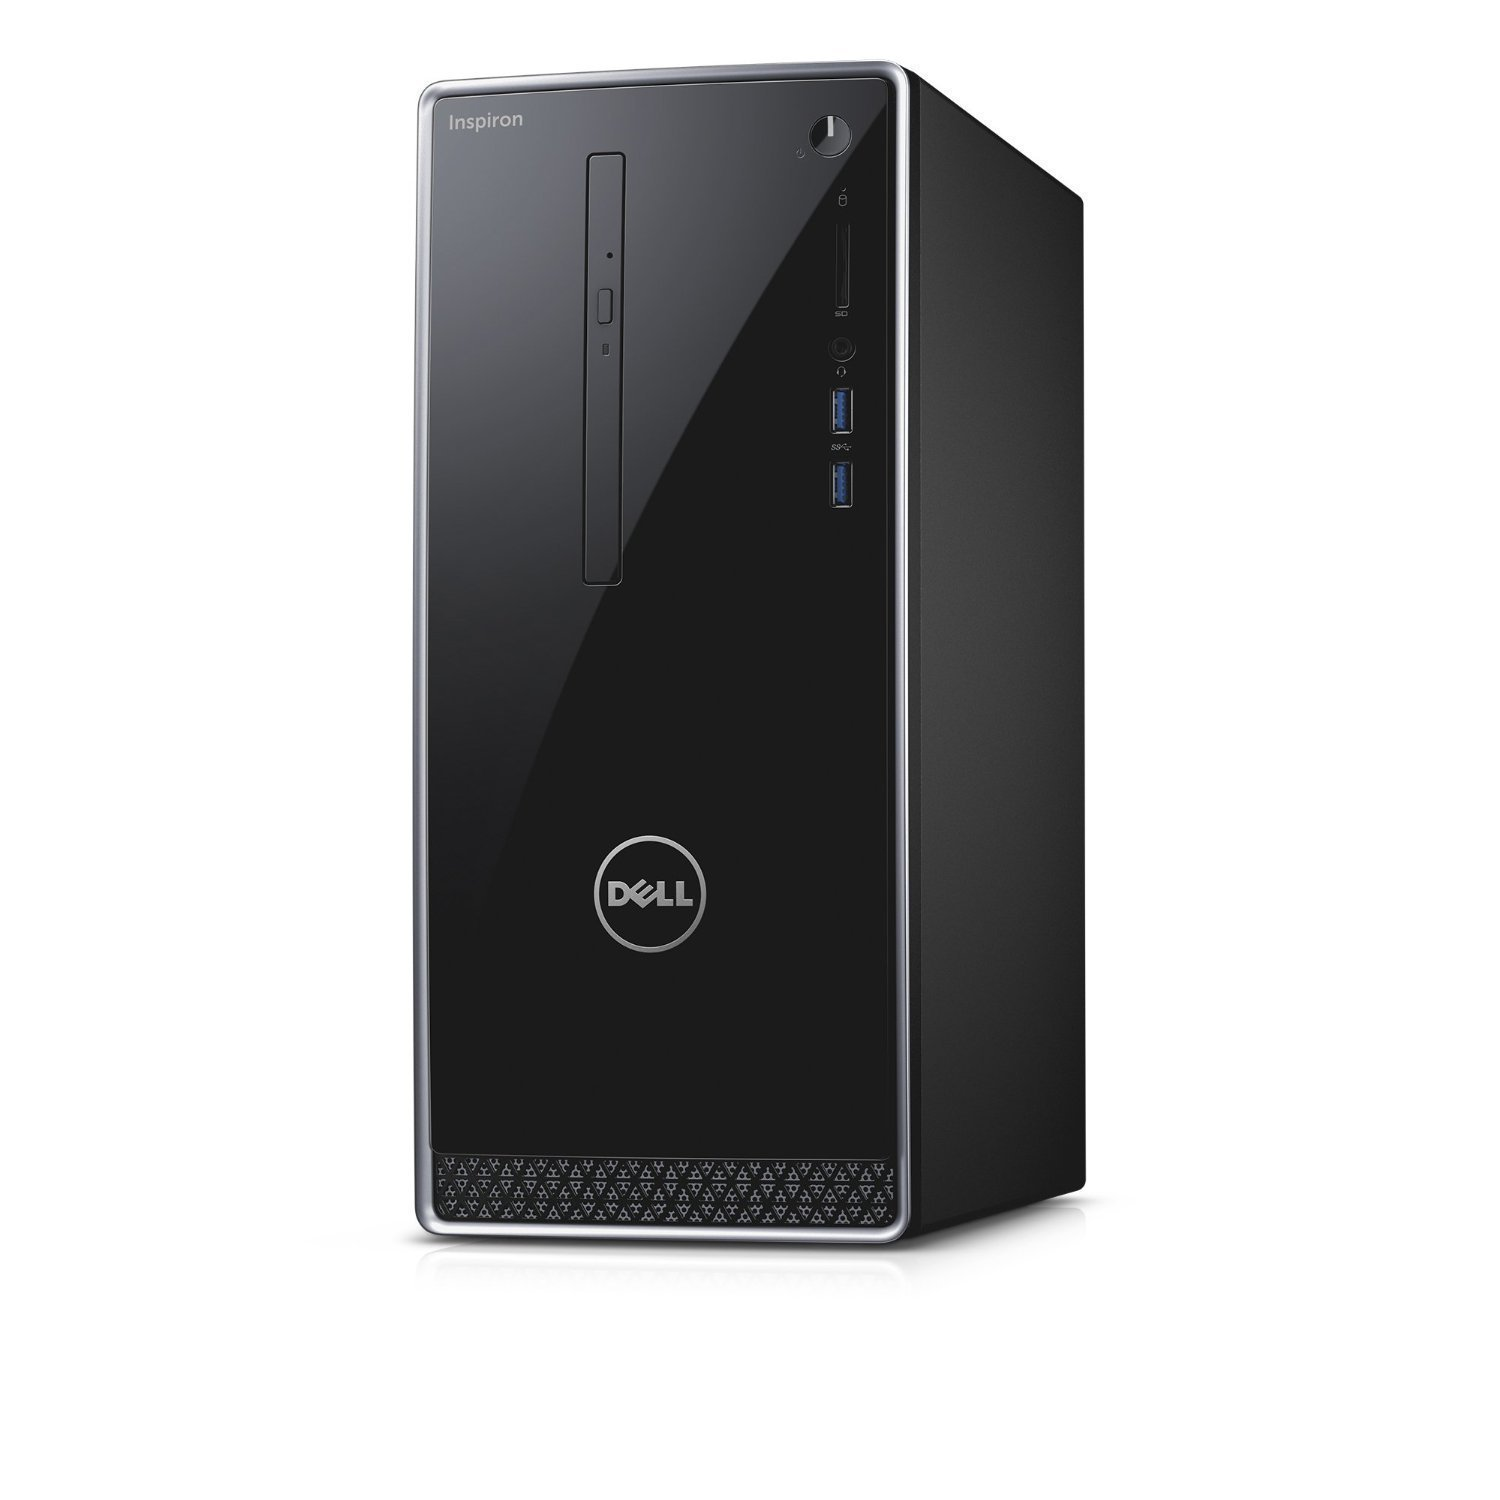 Dell Inspiron Flagship High Performance Desktop PC | Intel Core i3-6100 | 8GB RAM | 1TB HDD | DVDRW | Windows 7 Professional English 64bit (Includes Windows 10 Pro License) | Keyboard and Mouse by Dell (Image #3)